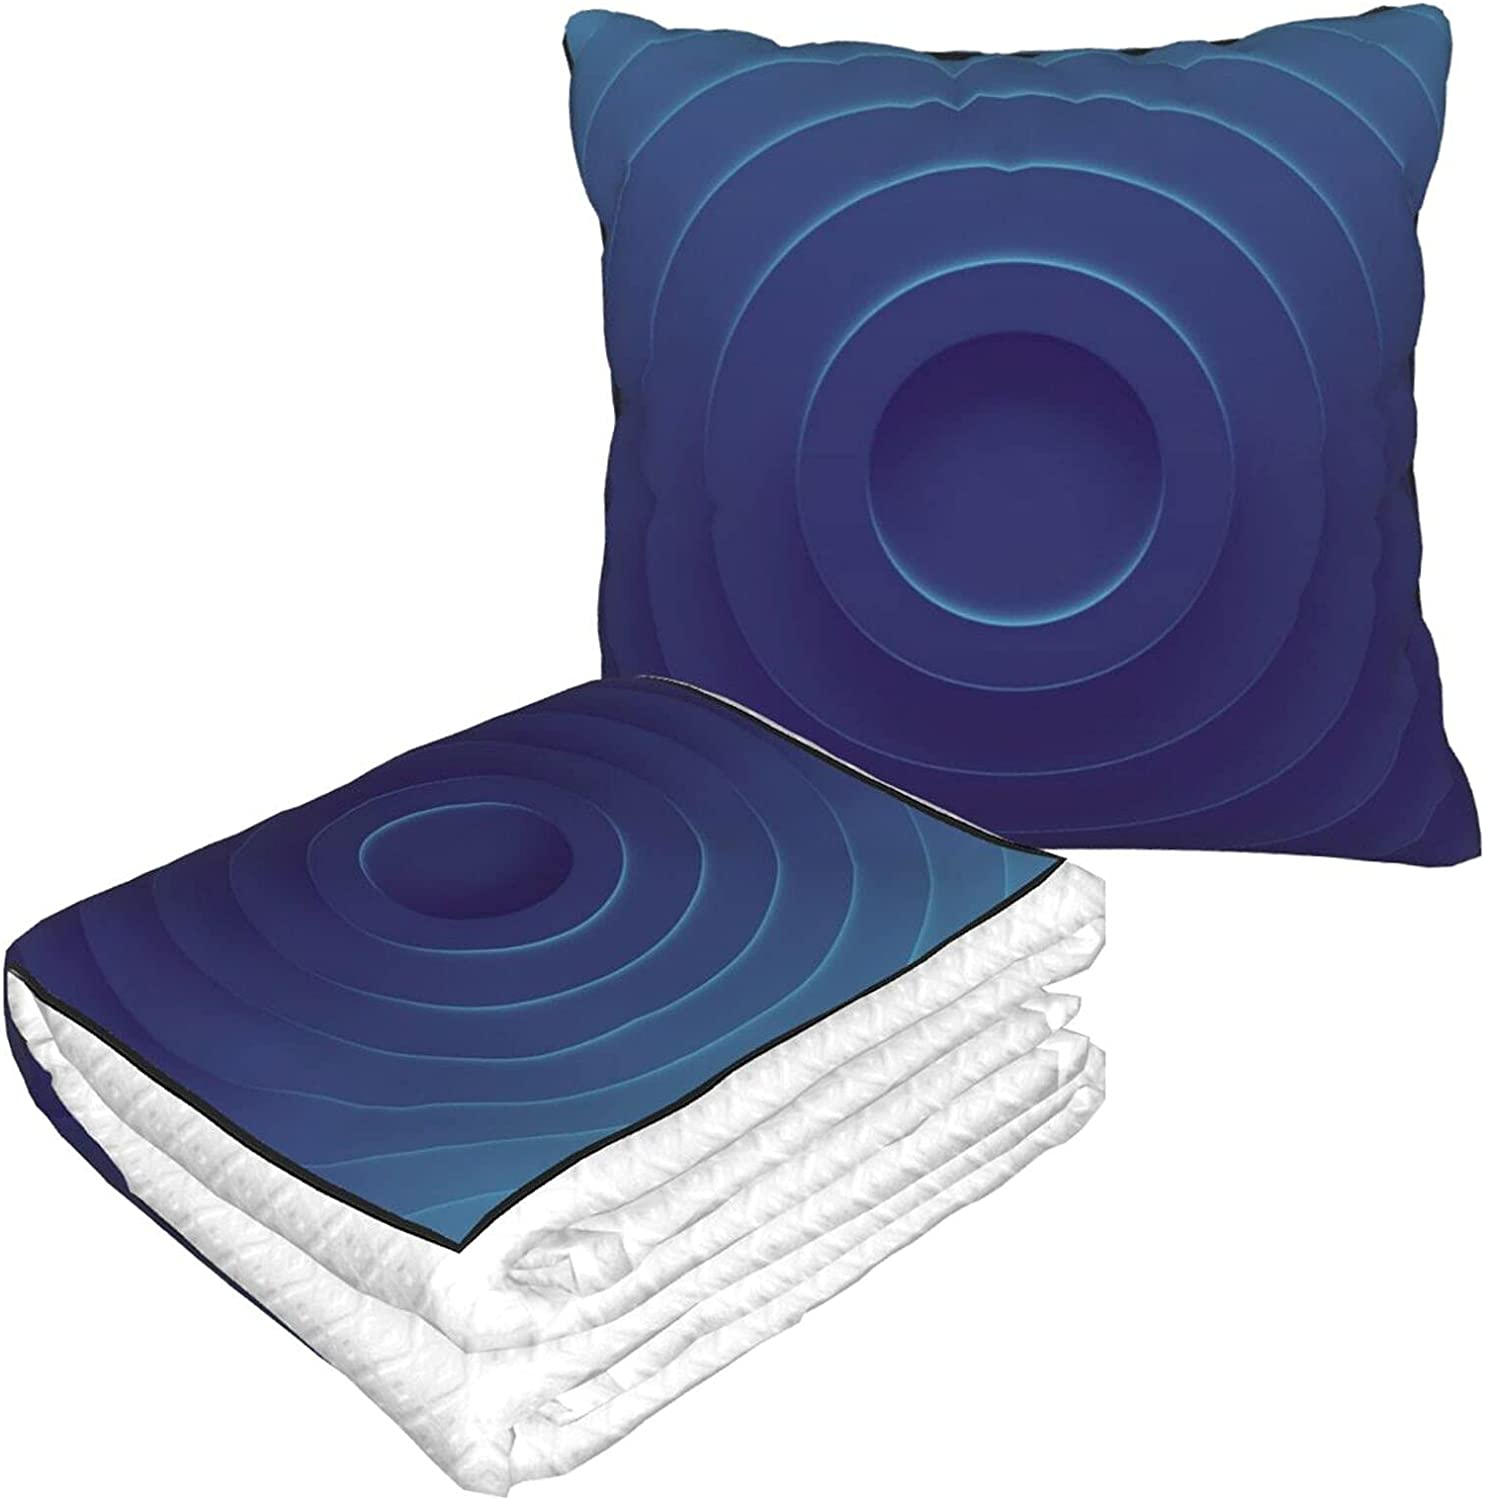 Blue Rings. 3D Illustration. Hug Two-in-One Pillow Doubl Blanket Super OFFicial site special price